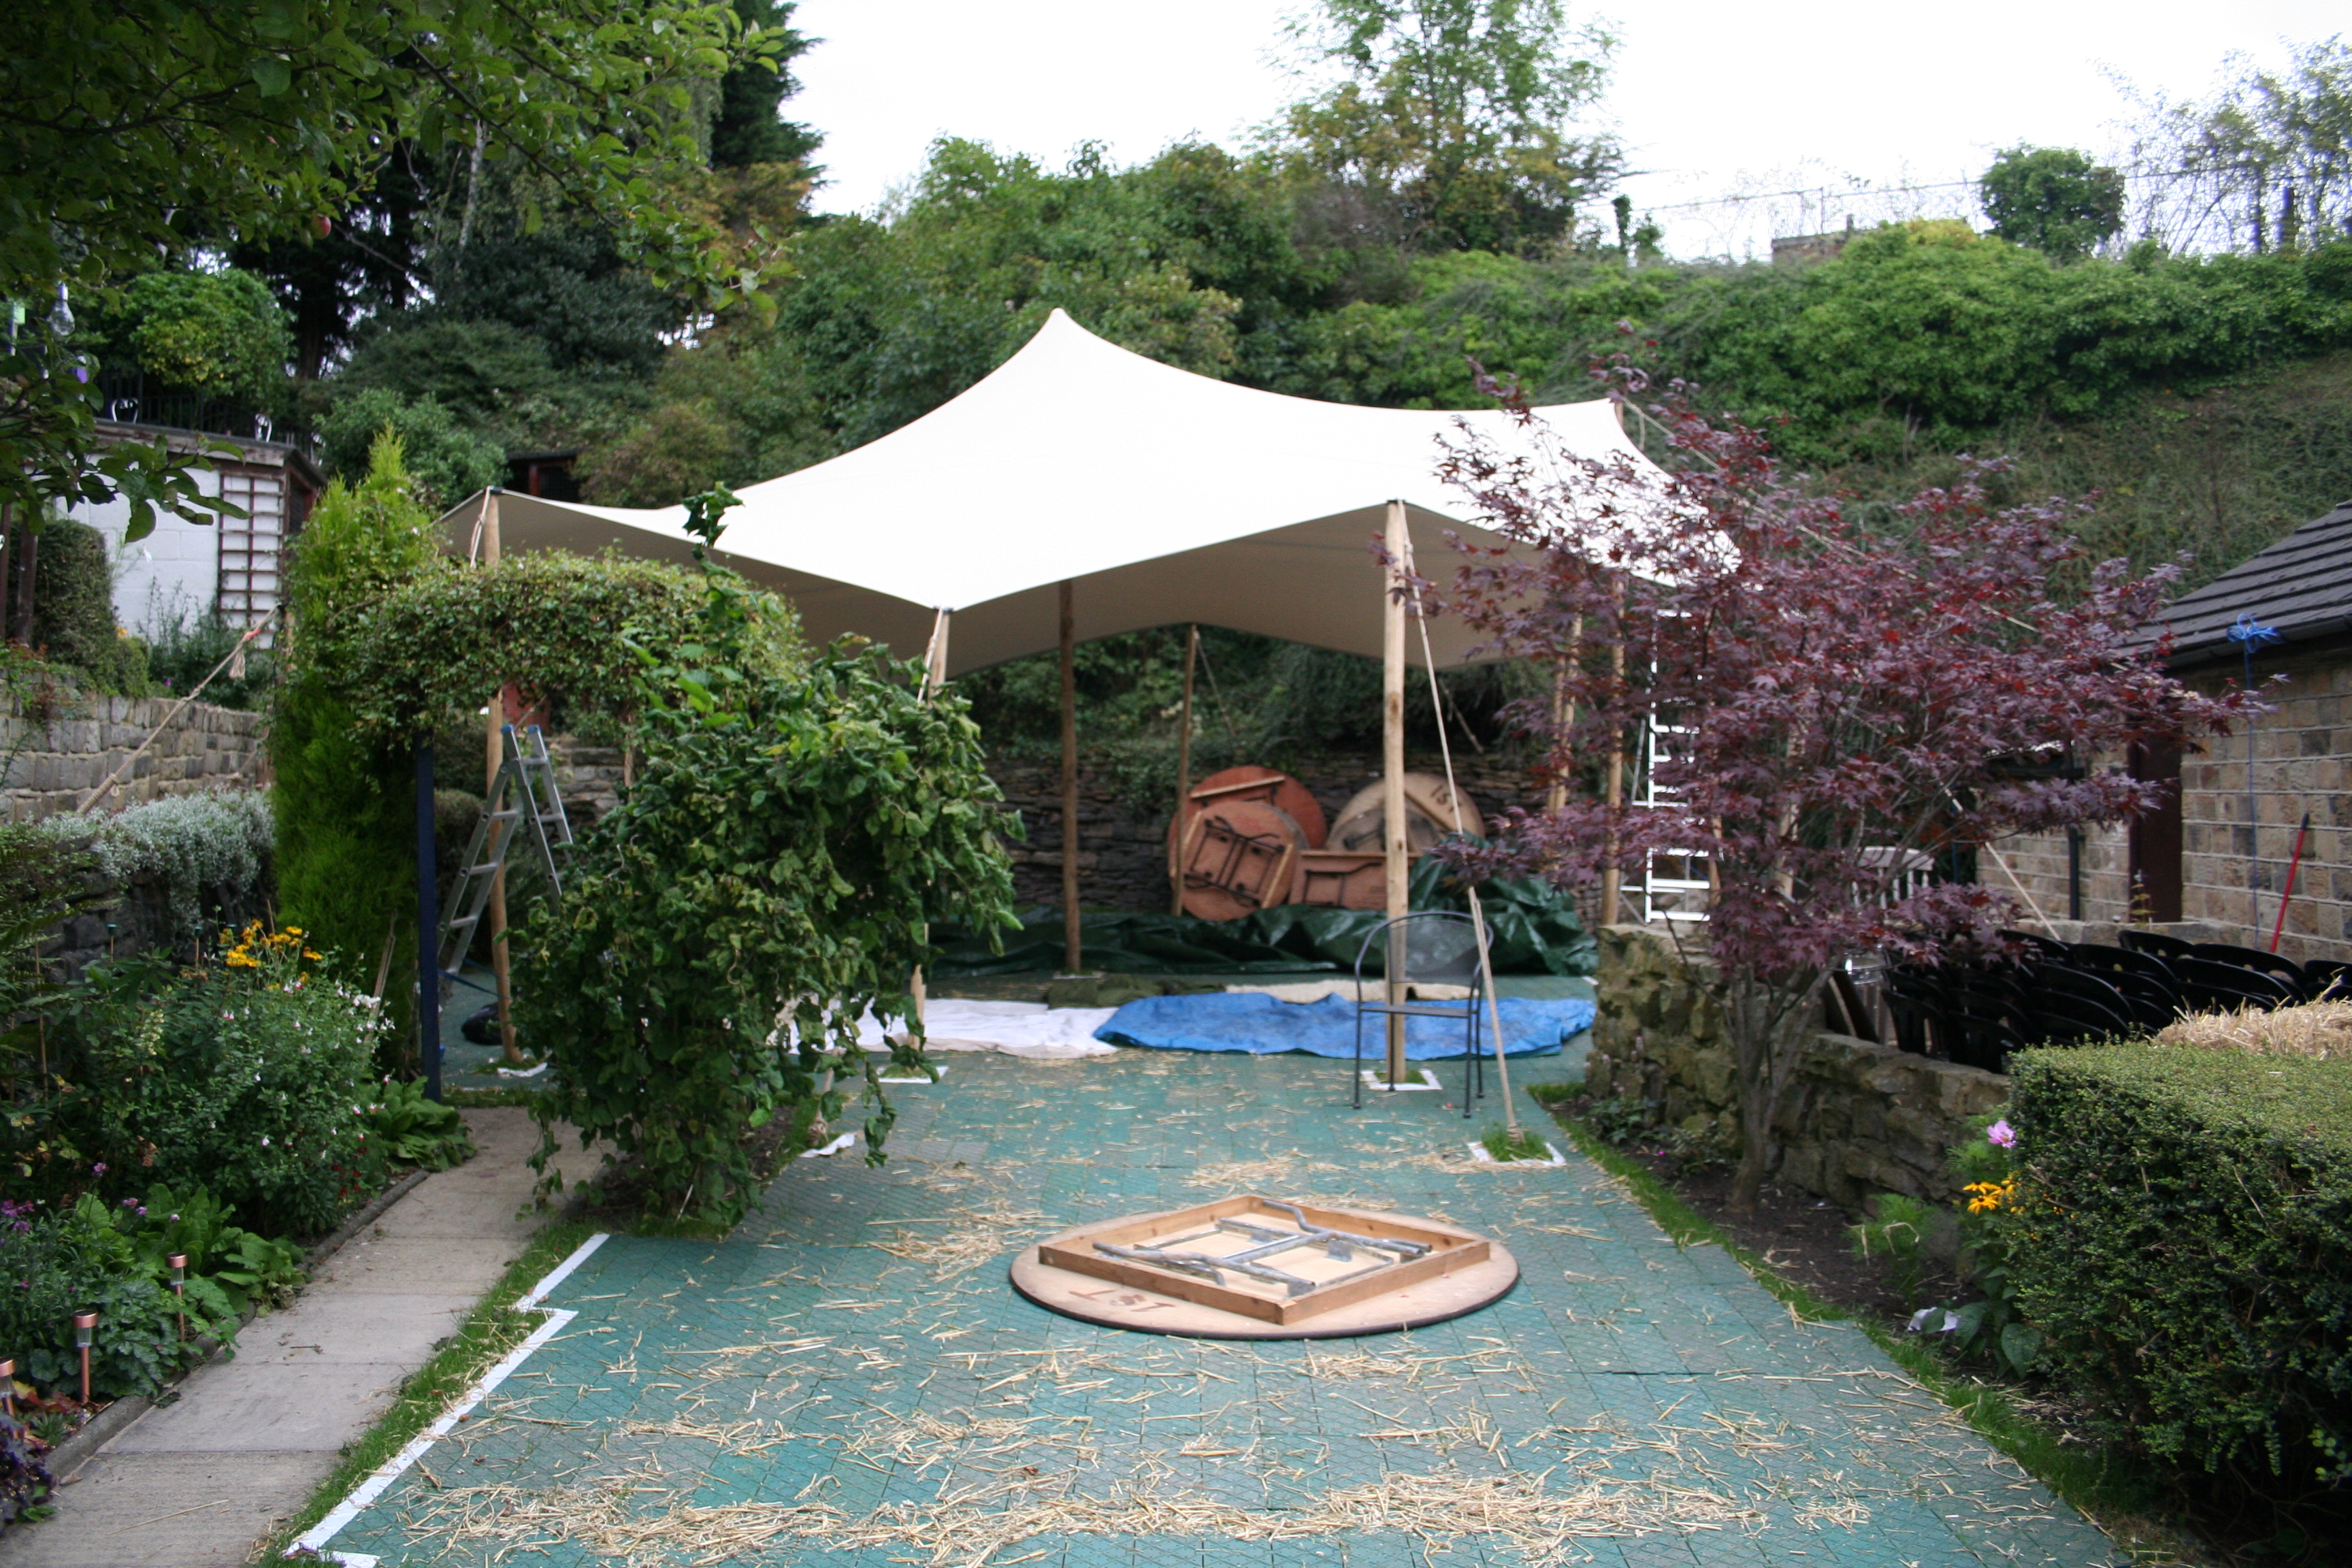 stretch tent hire mirfield west yorkshire wedding at home in the garden blind test the pork pie for the wedding food